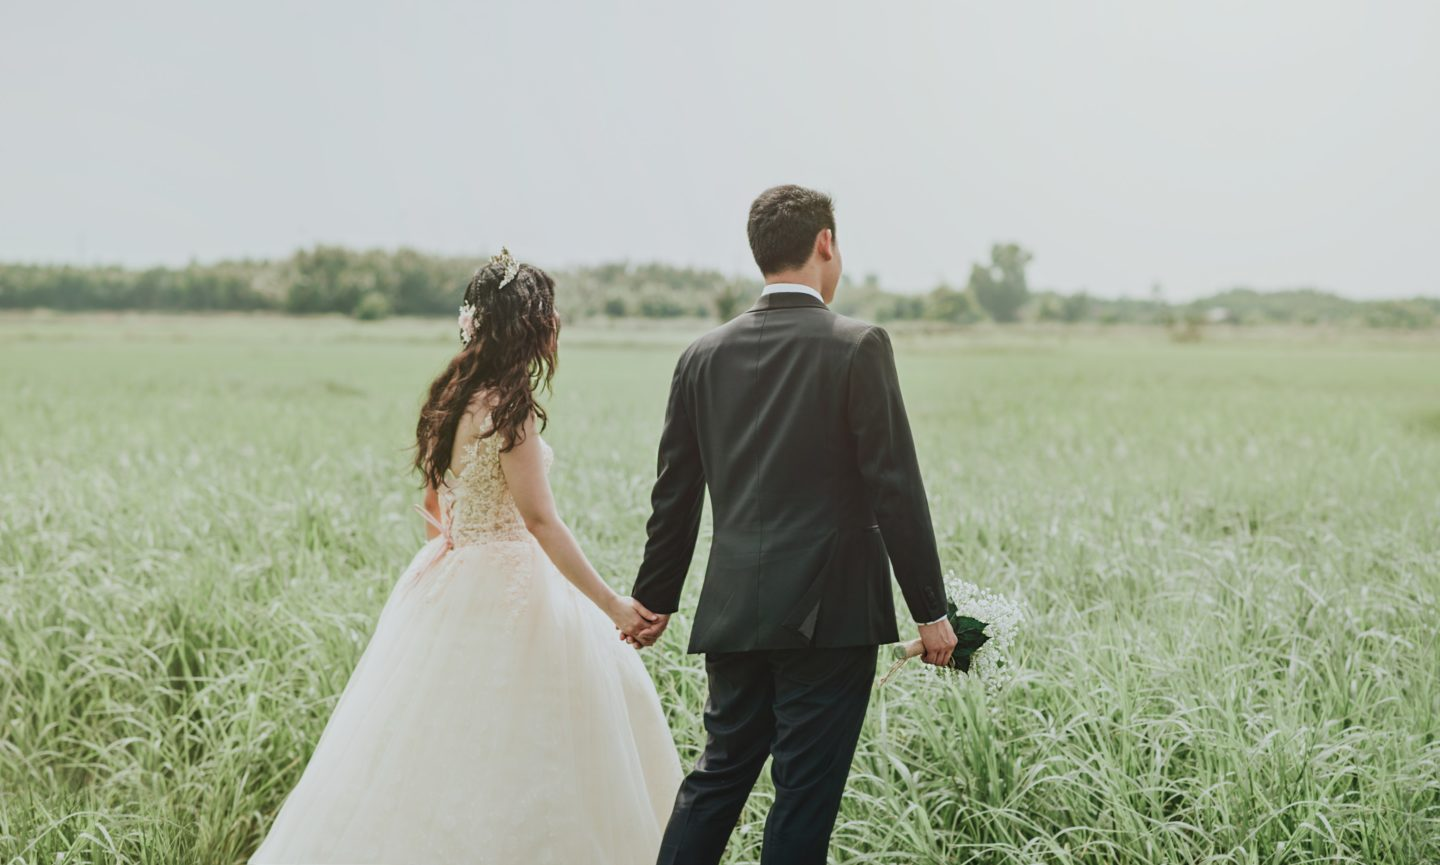 Husband guiding his wife through a field.